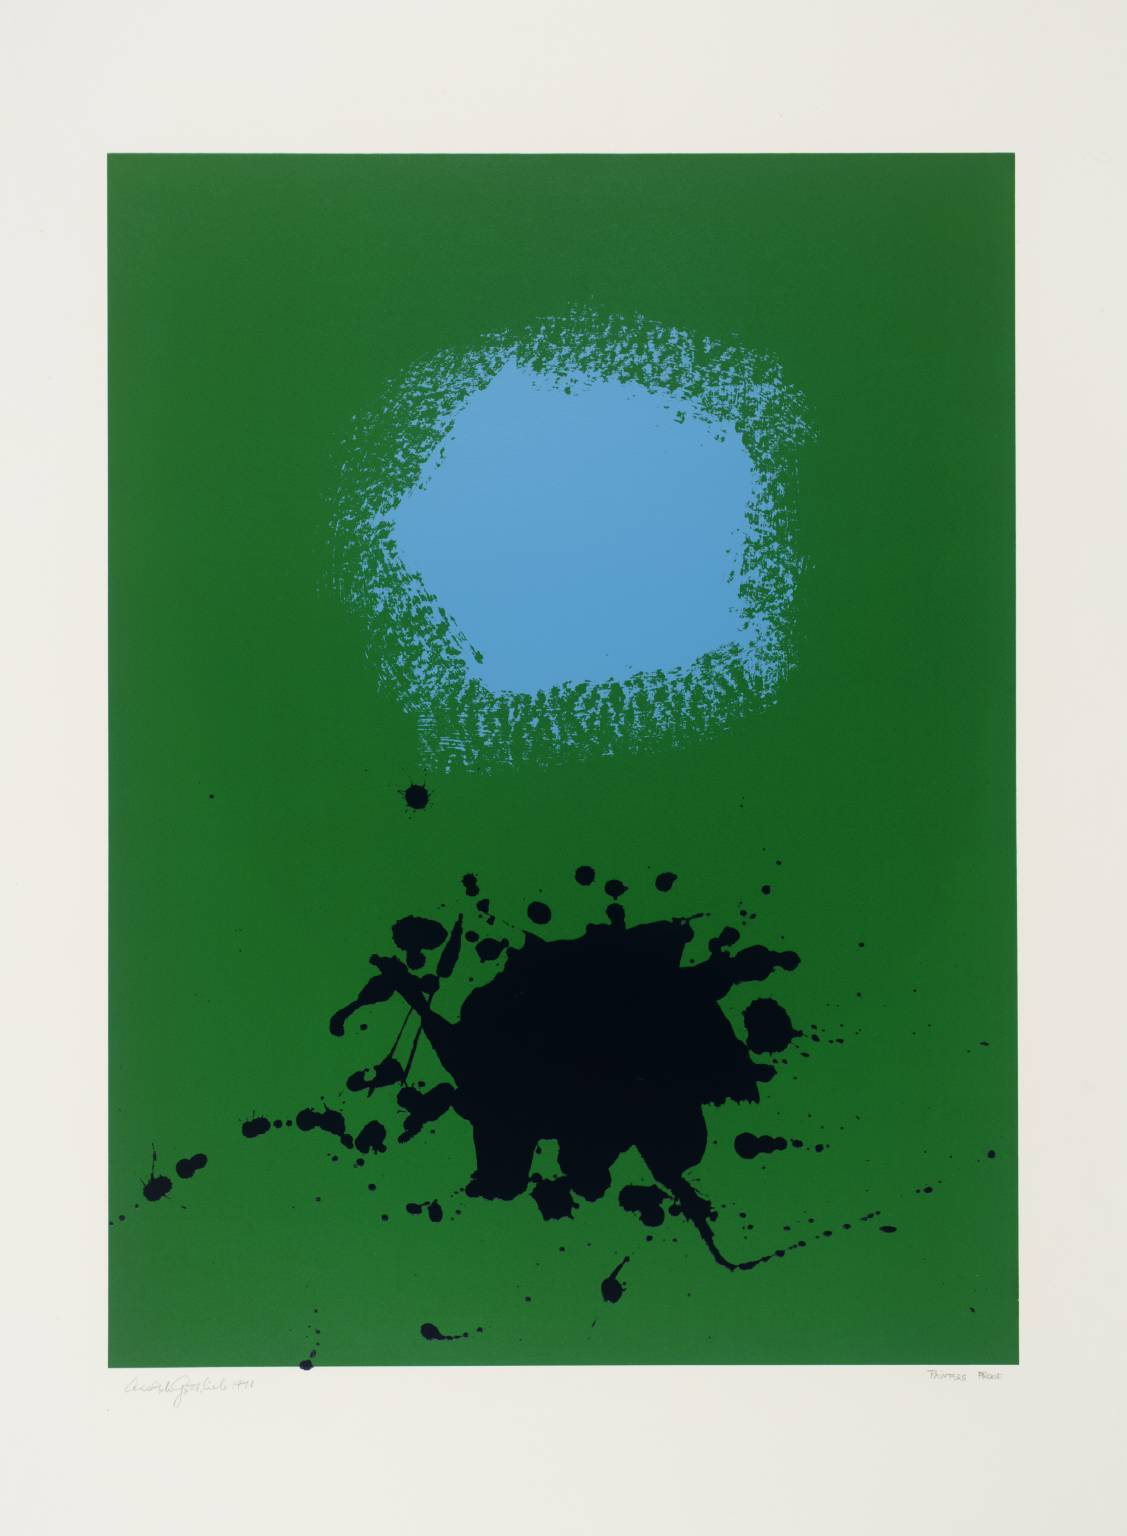 Adolph Gottlieb - Blues on Green, 1971. Screenprint on paper